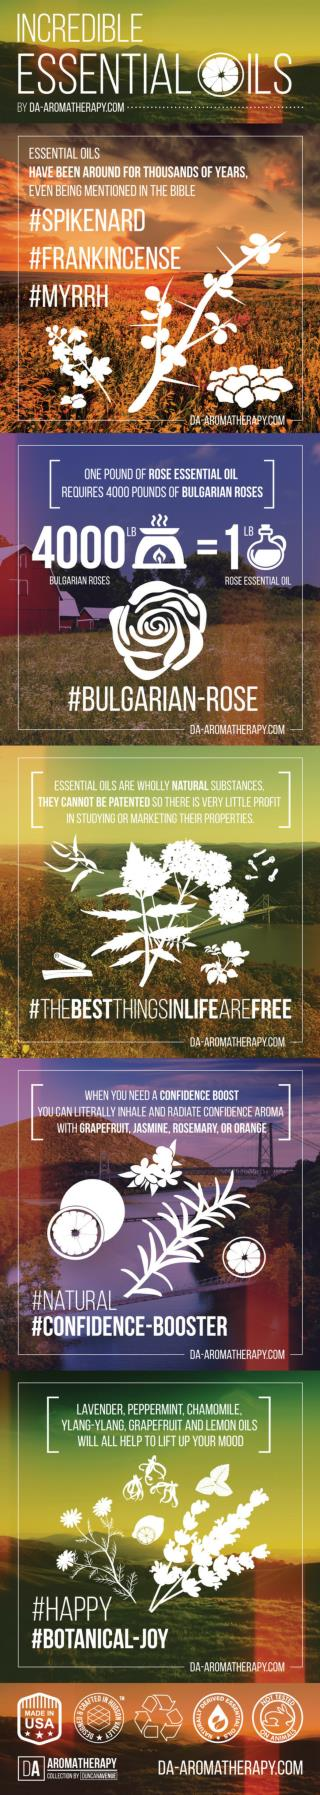 Incredible Essential Oils Infographci by DA Aromatherapy Collection